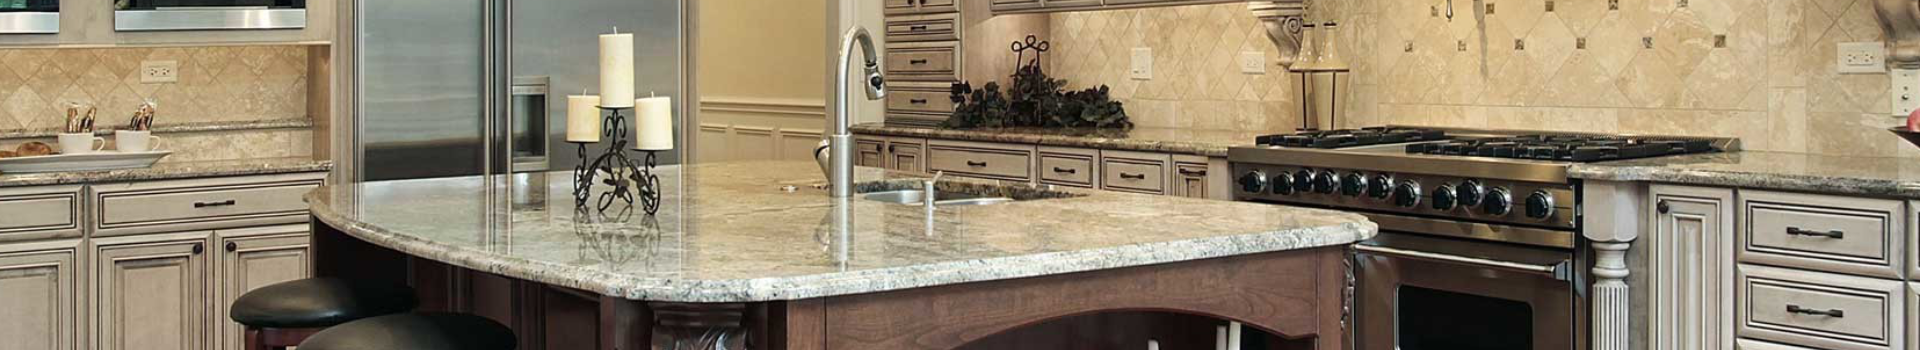 Granite Countertop / Countertops